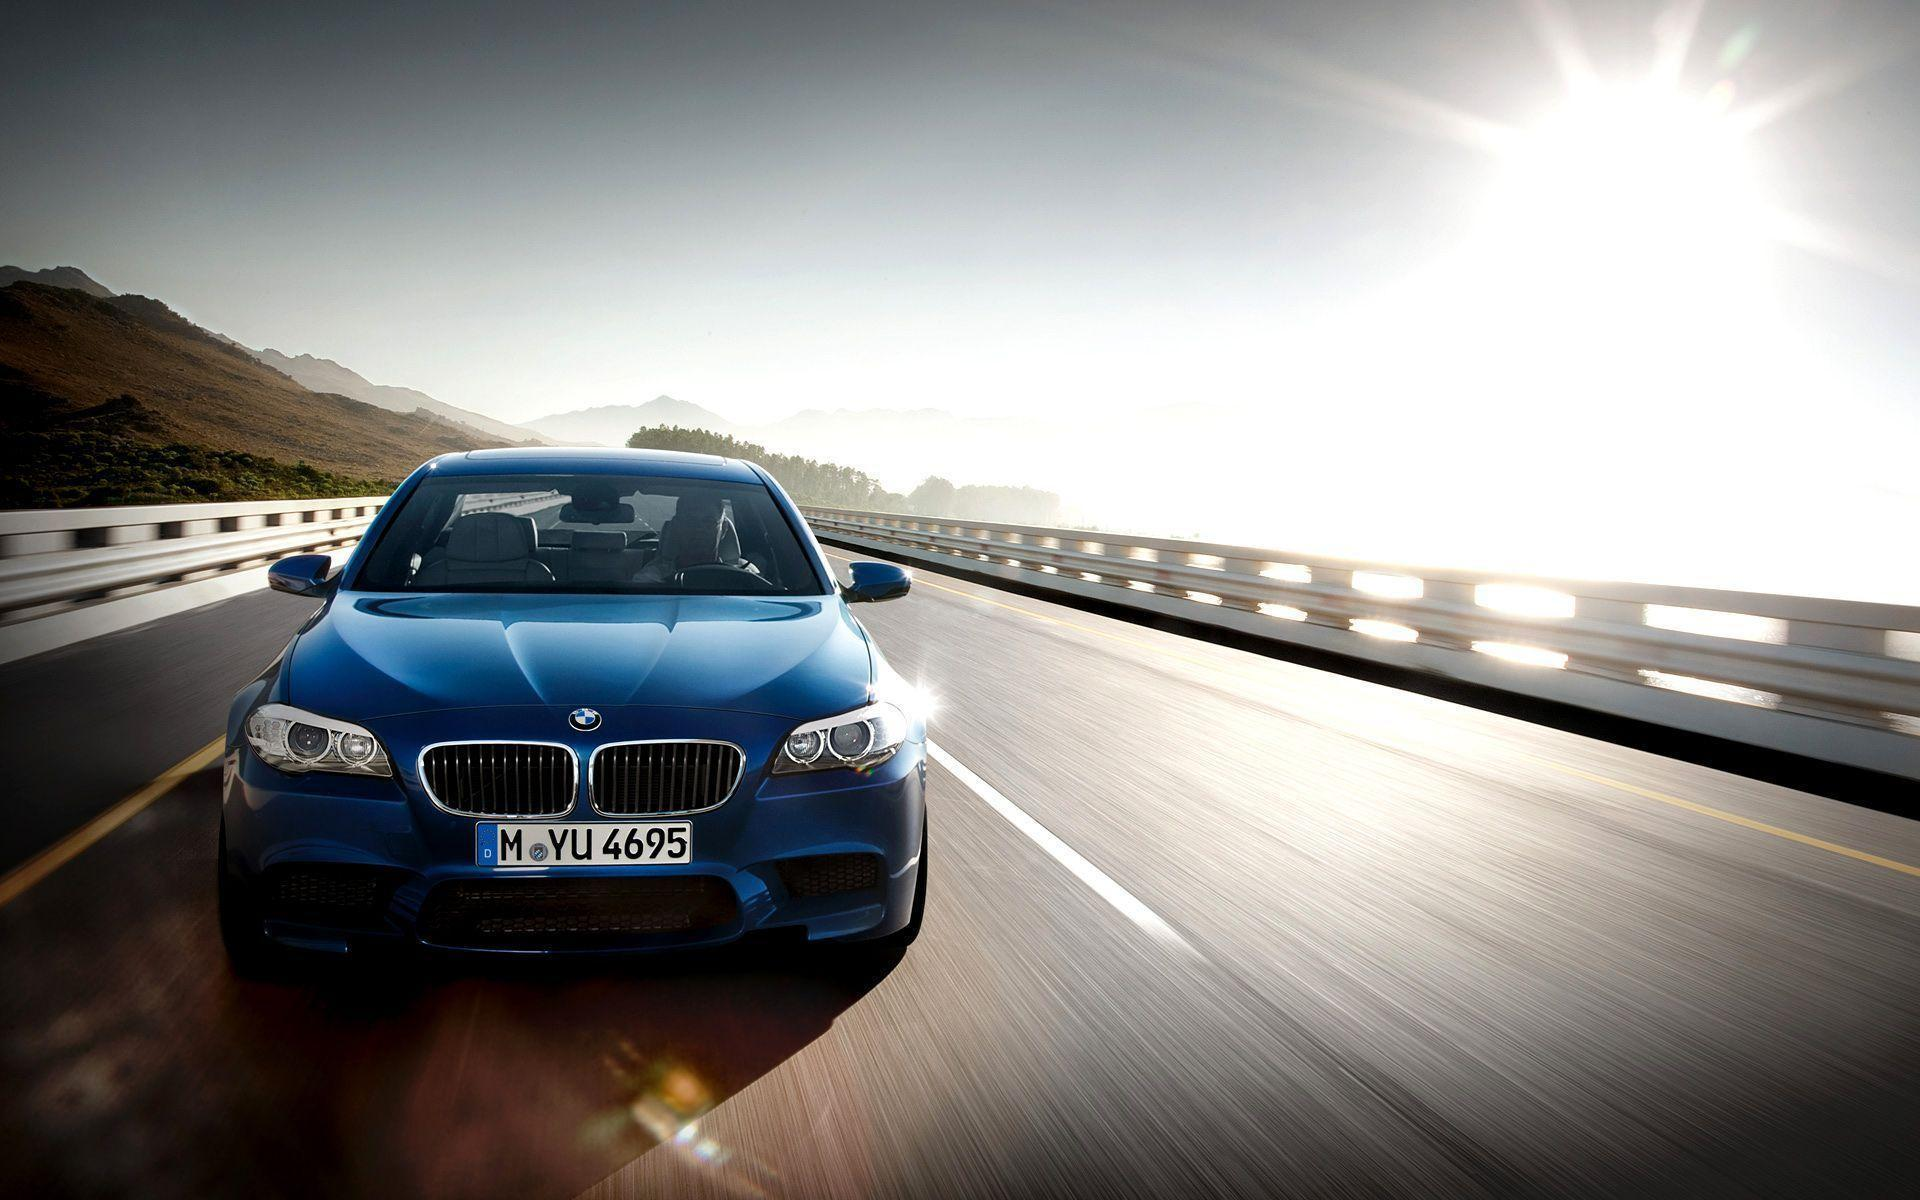 Your Batch of BMW M5 LCI Wallpapers Is Here